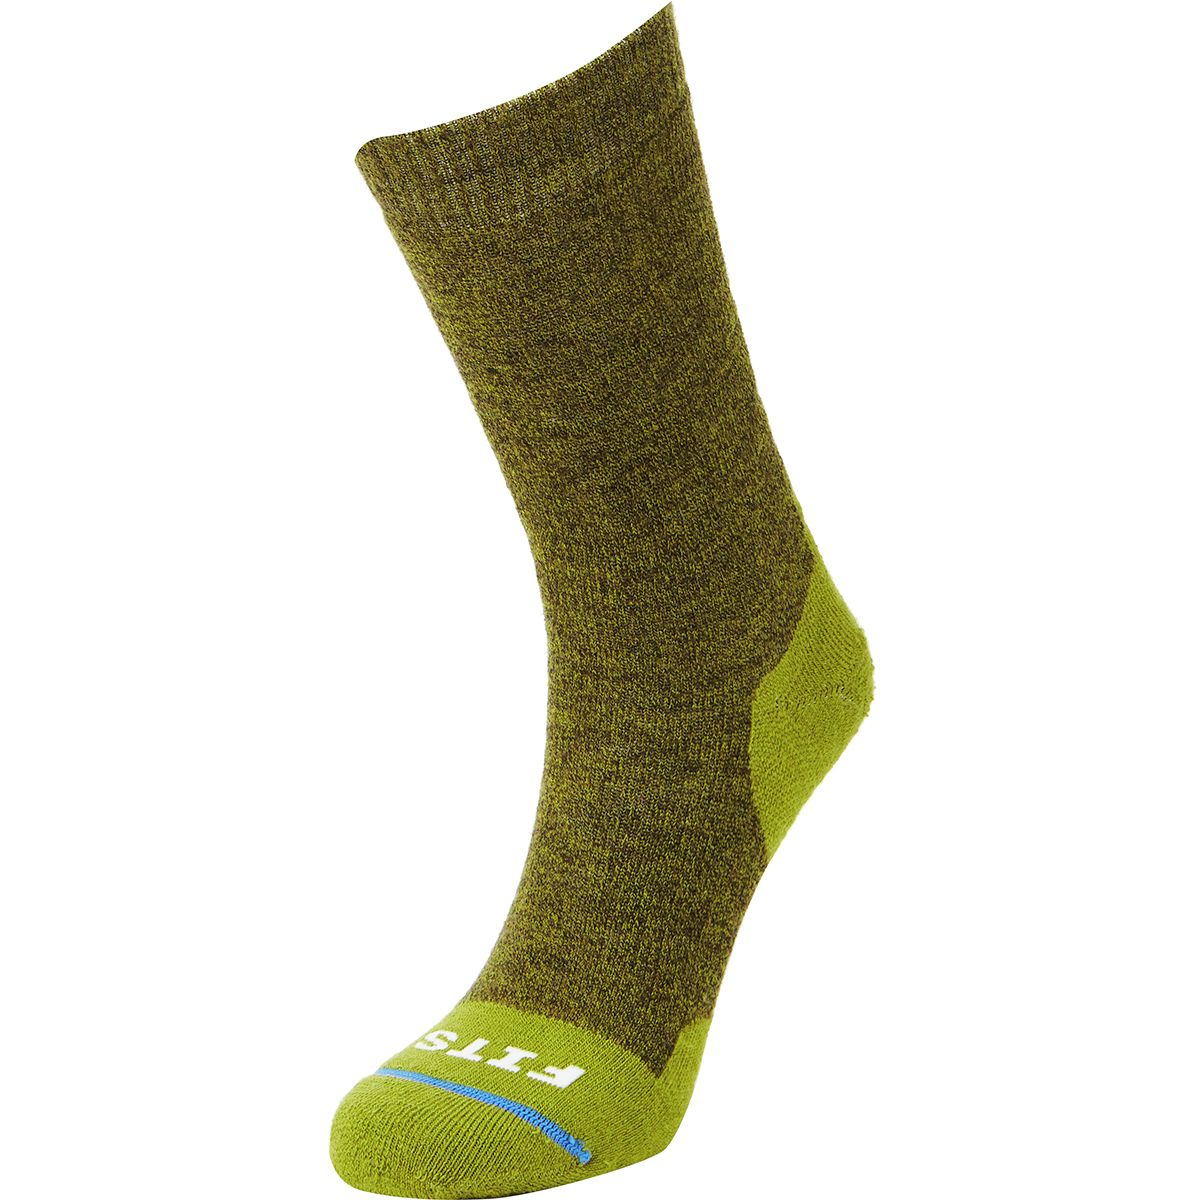 8829aa92bed2b The Best Hiking/Backpacking Socks for 2019 - Trailspace